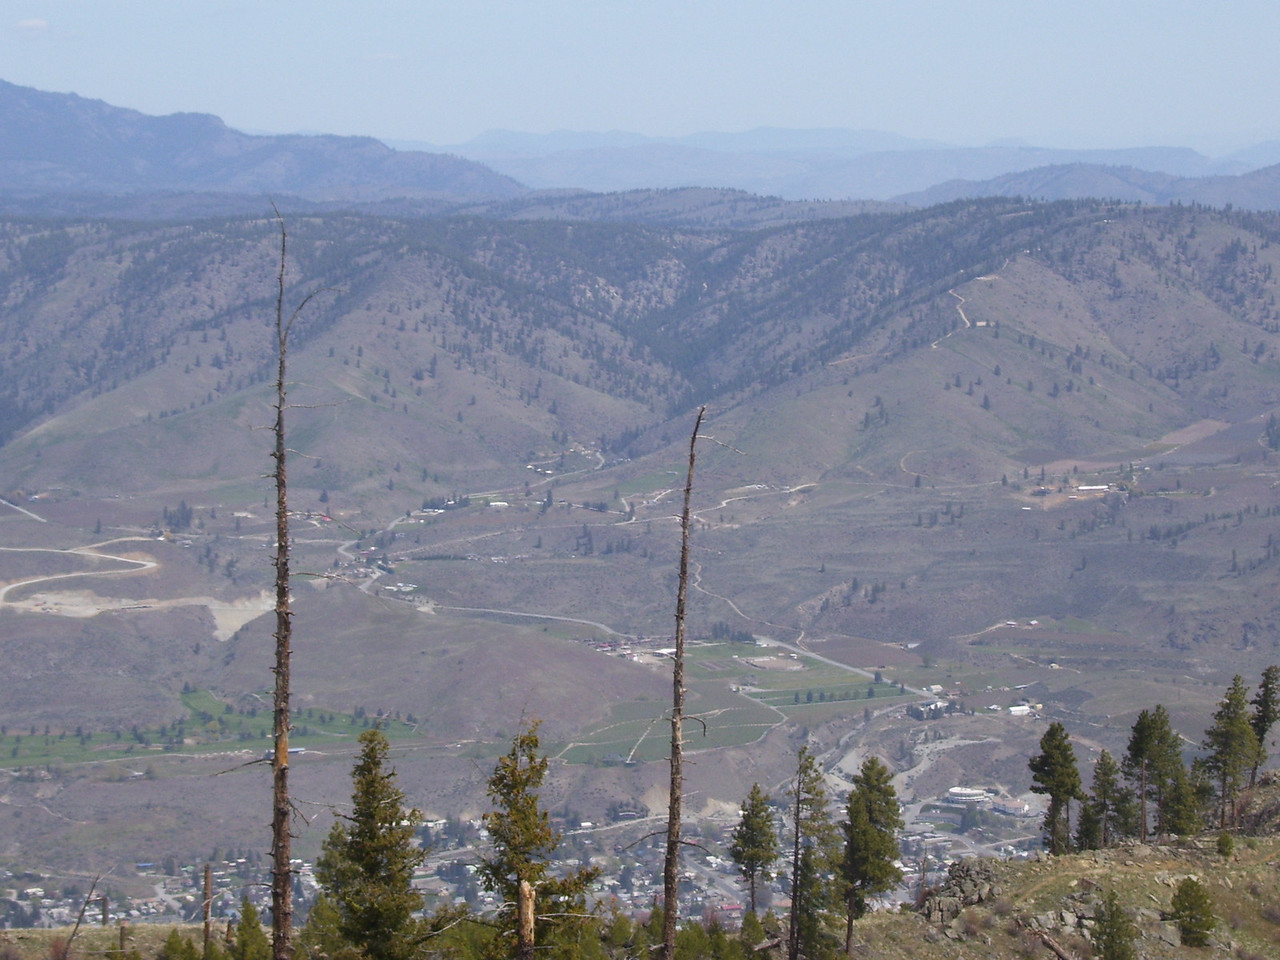 The city of Chelan is directly below and Tim's 20 acre spread is in the draw at the center of the picture.